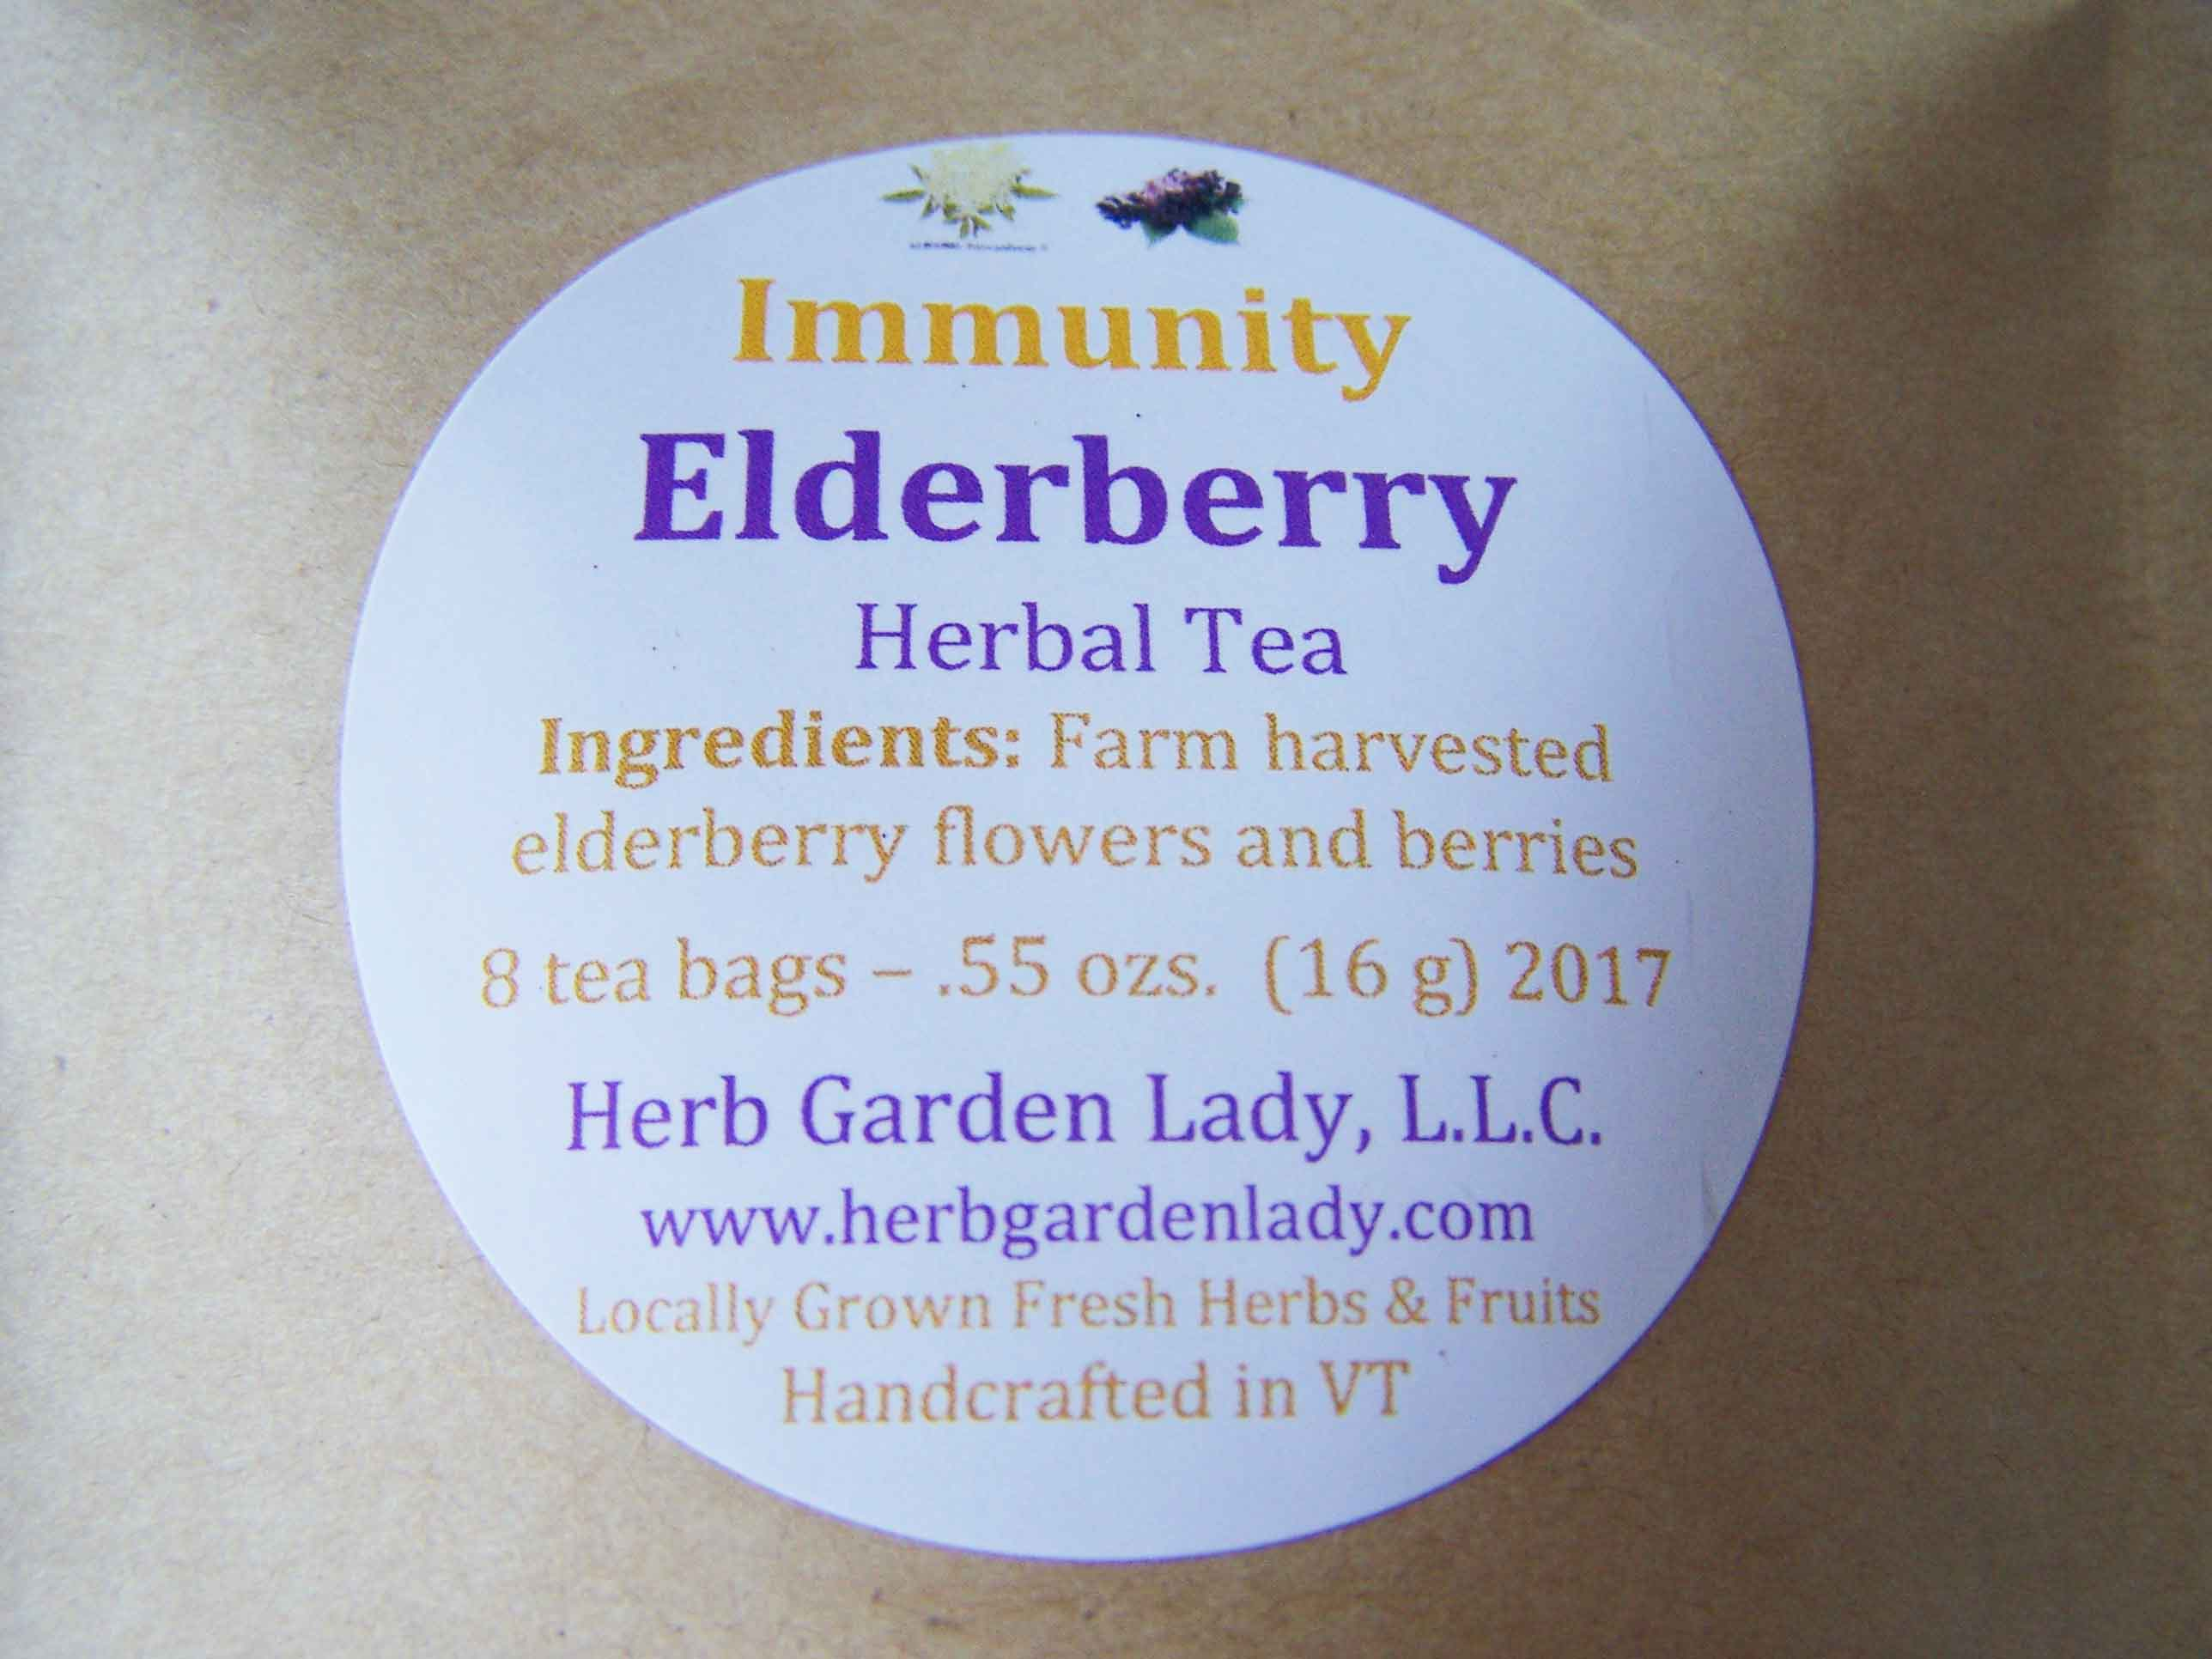 Elderberry for the immune system